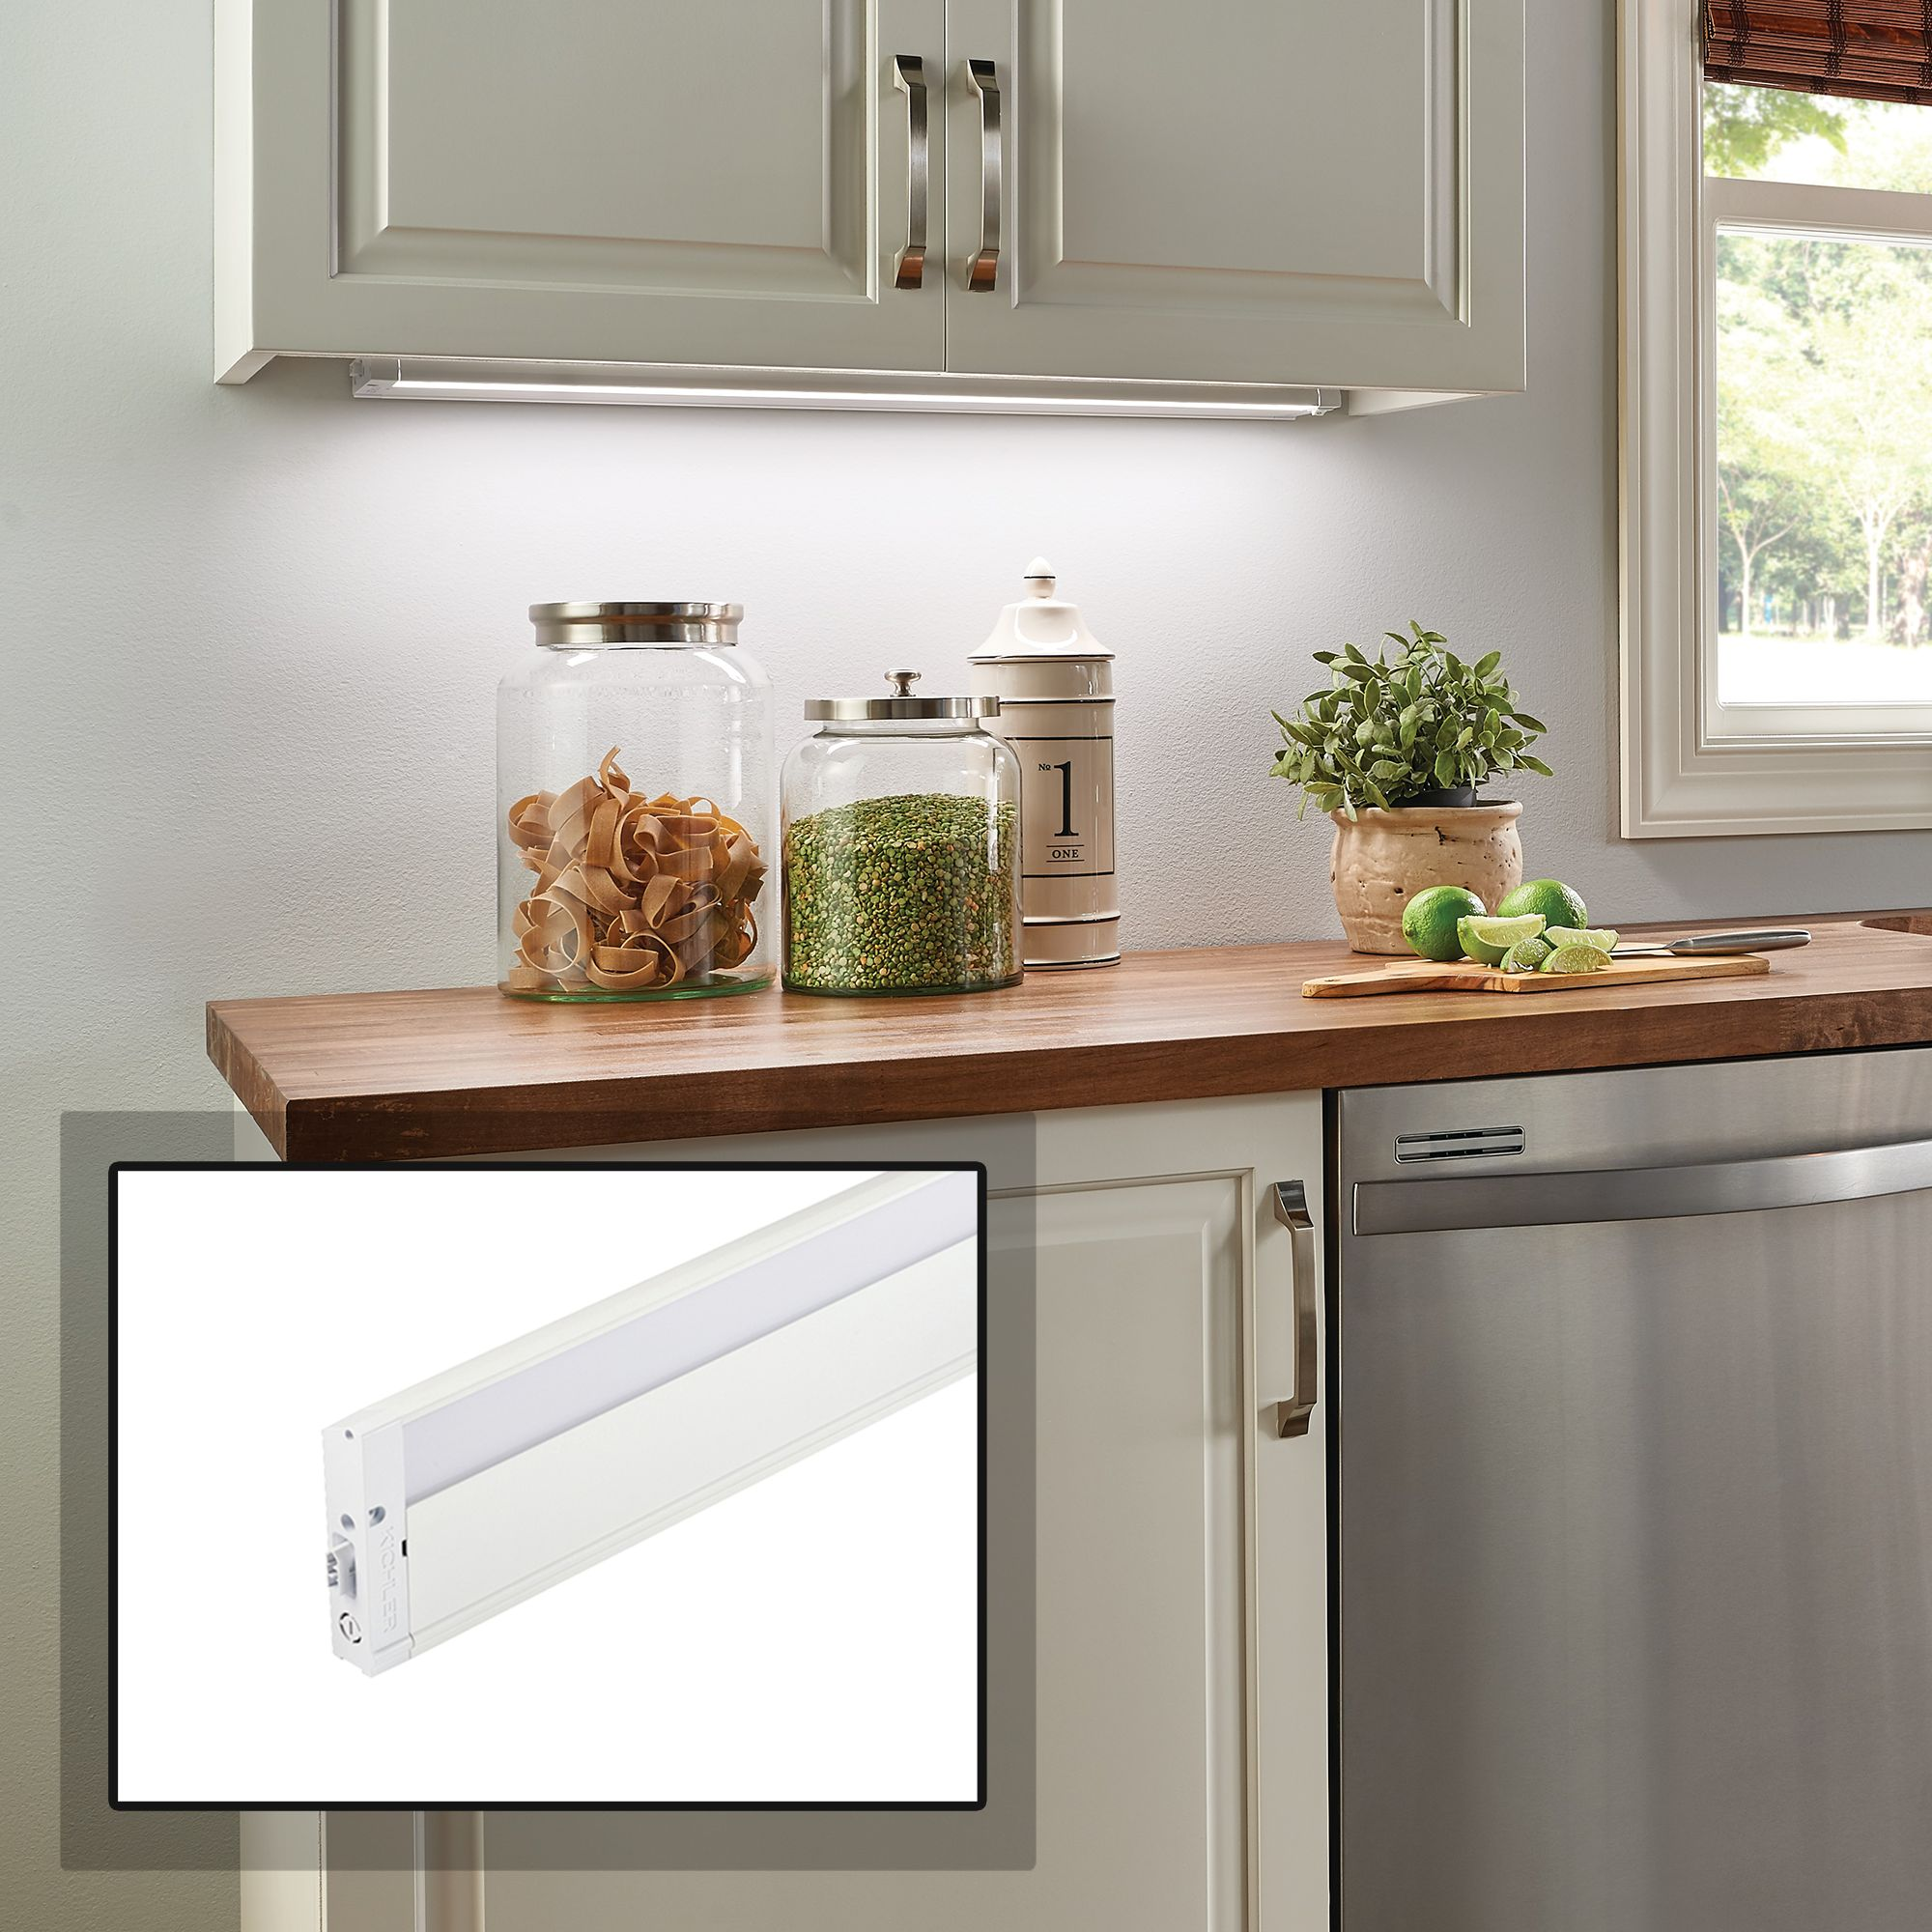 Kichler 4U Textured White 30. Kichler 4U Textured White 30  Wide LED Under Cabinet Light & Kichler Led Line Voltage 120V Under Cabinet Lights | Lamps Plus